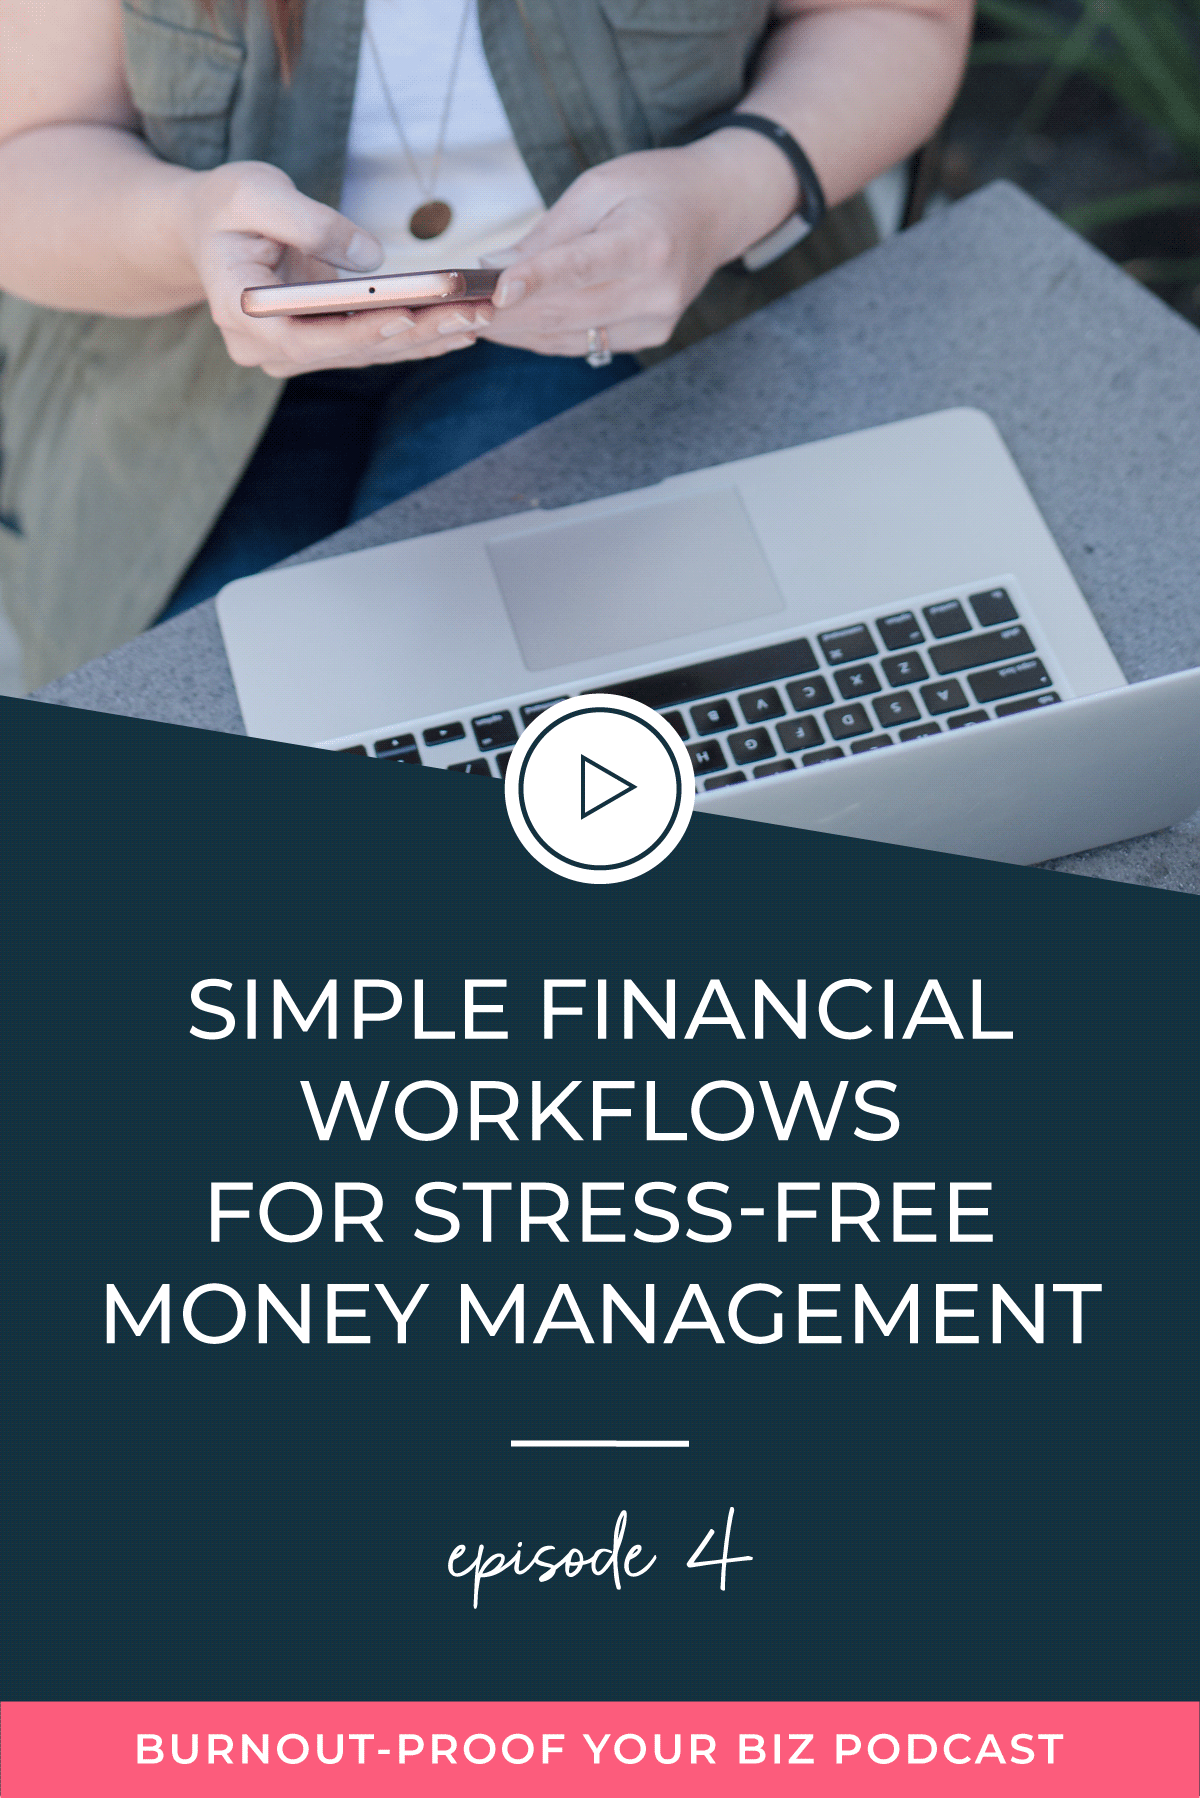 Burnout-Proof Your Biz Podcast with Chelsea B Foster | Episode 004 - Simple Financial Workflows for Stress-free Money Management | Learn how to run your biz and live your dream life on your own terms without the fear of burnout.